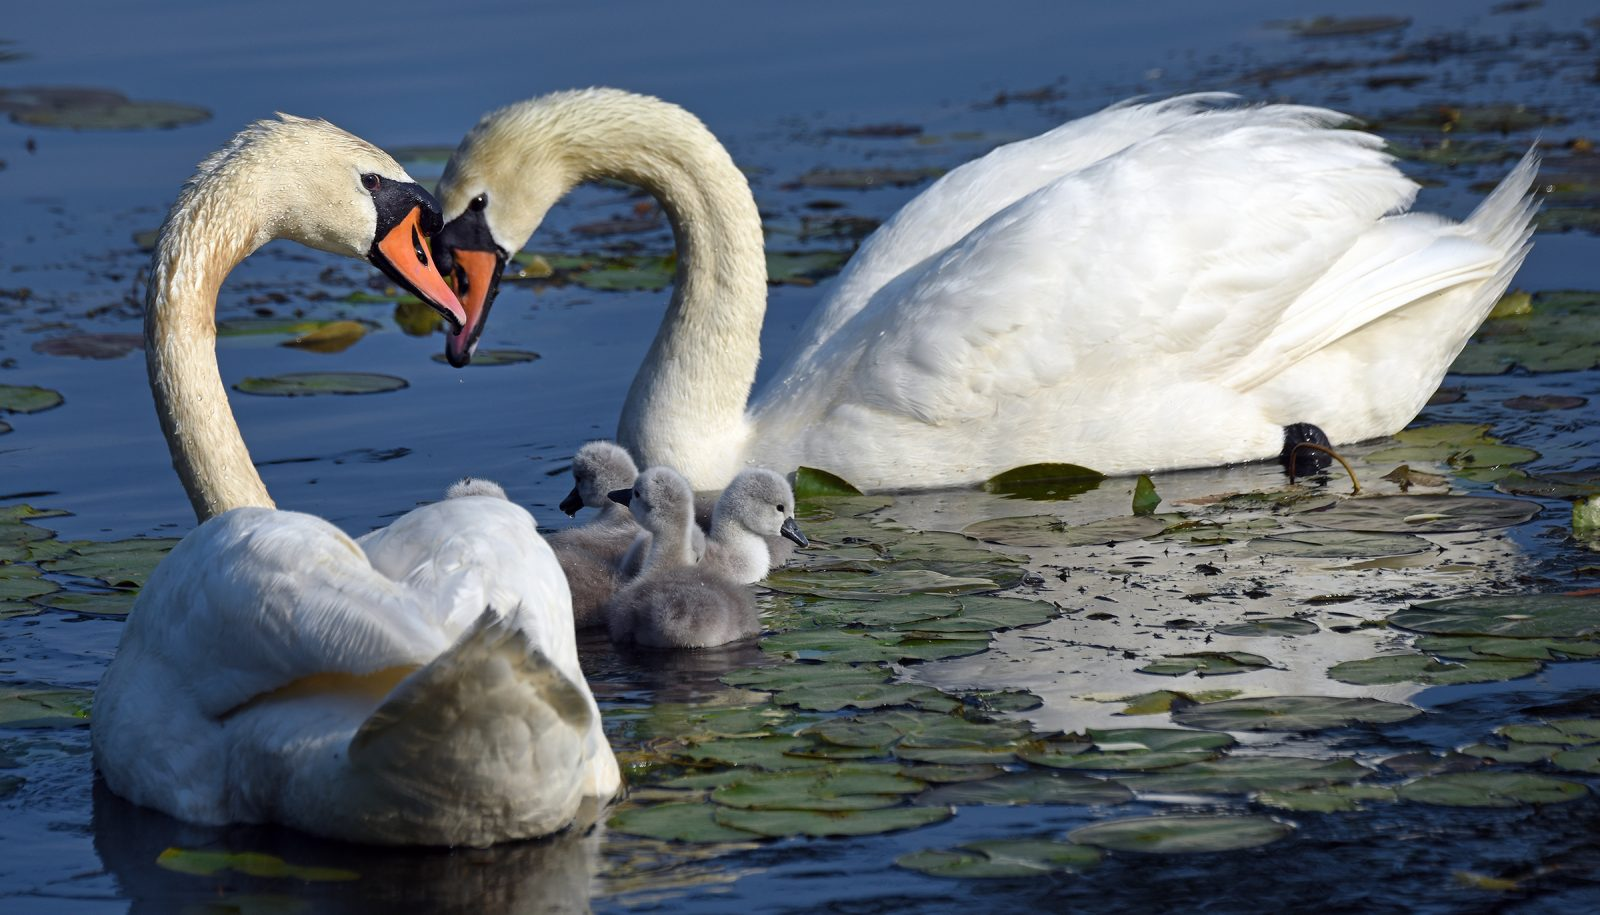 Swans and their chicks on the Charles River